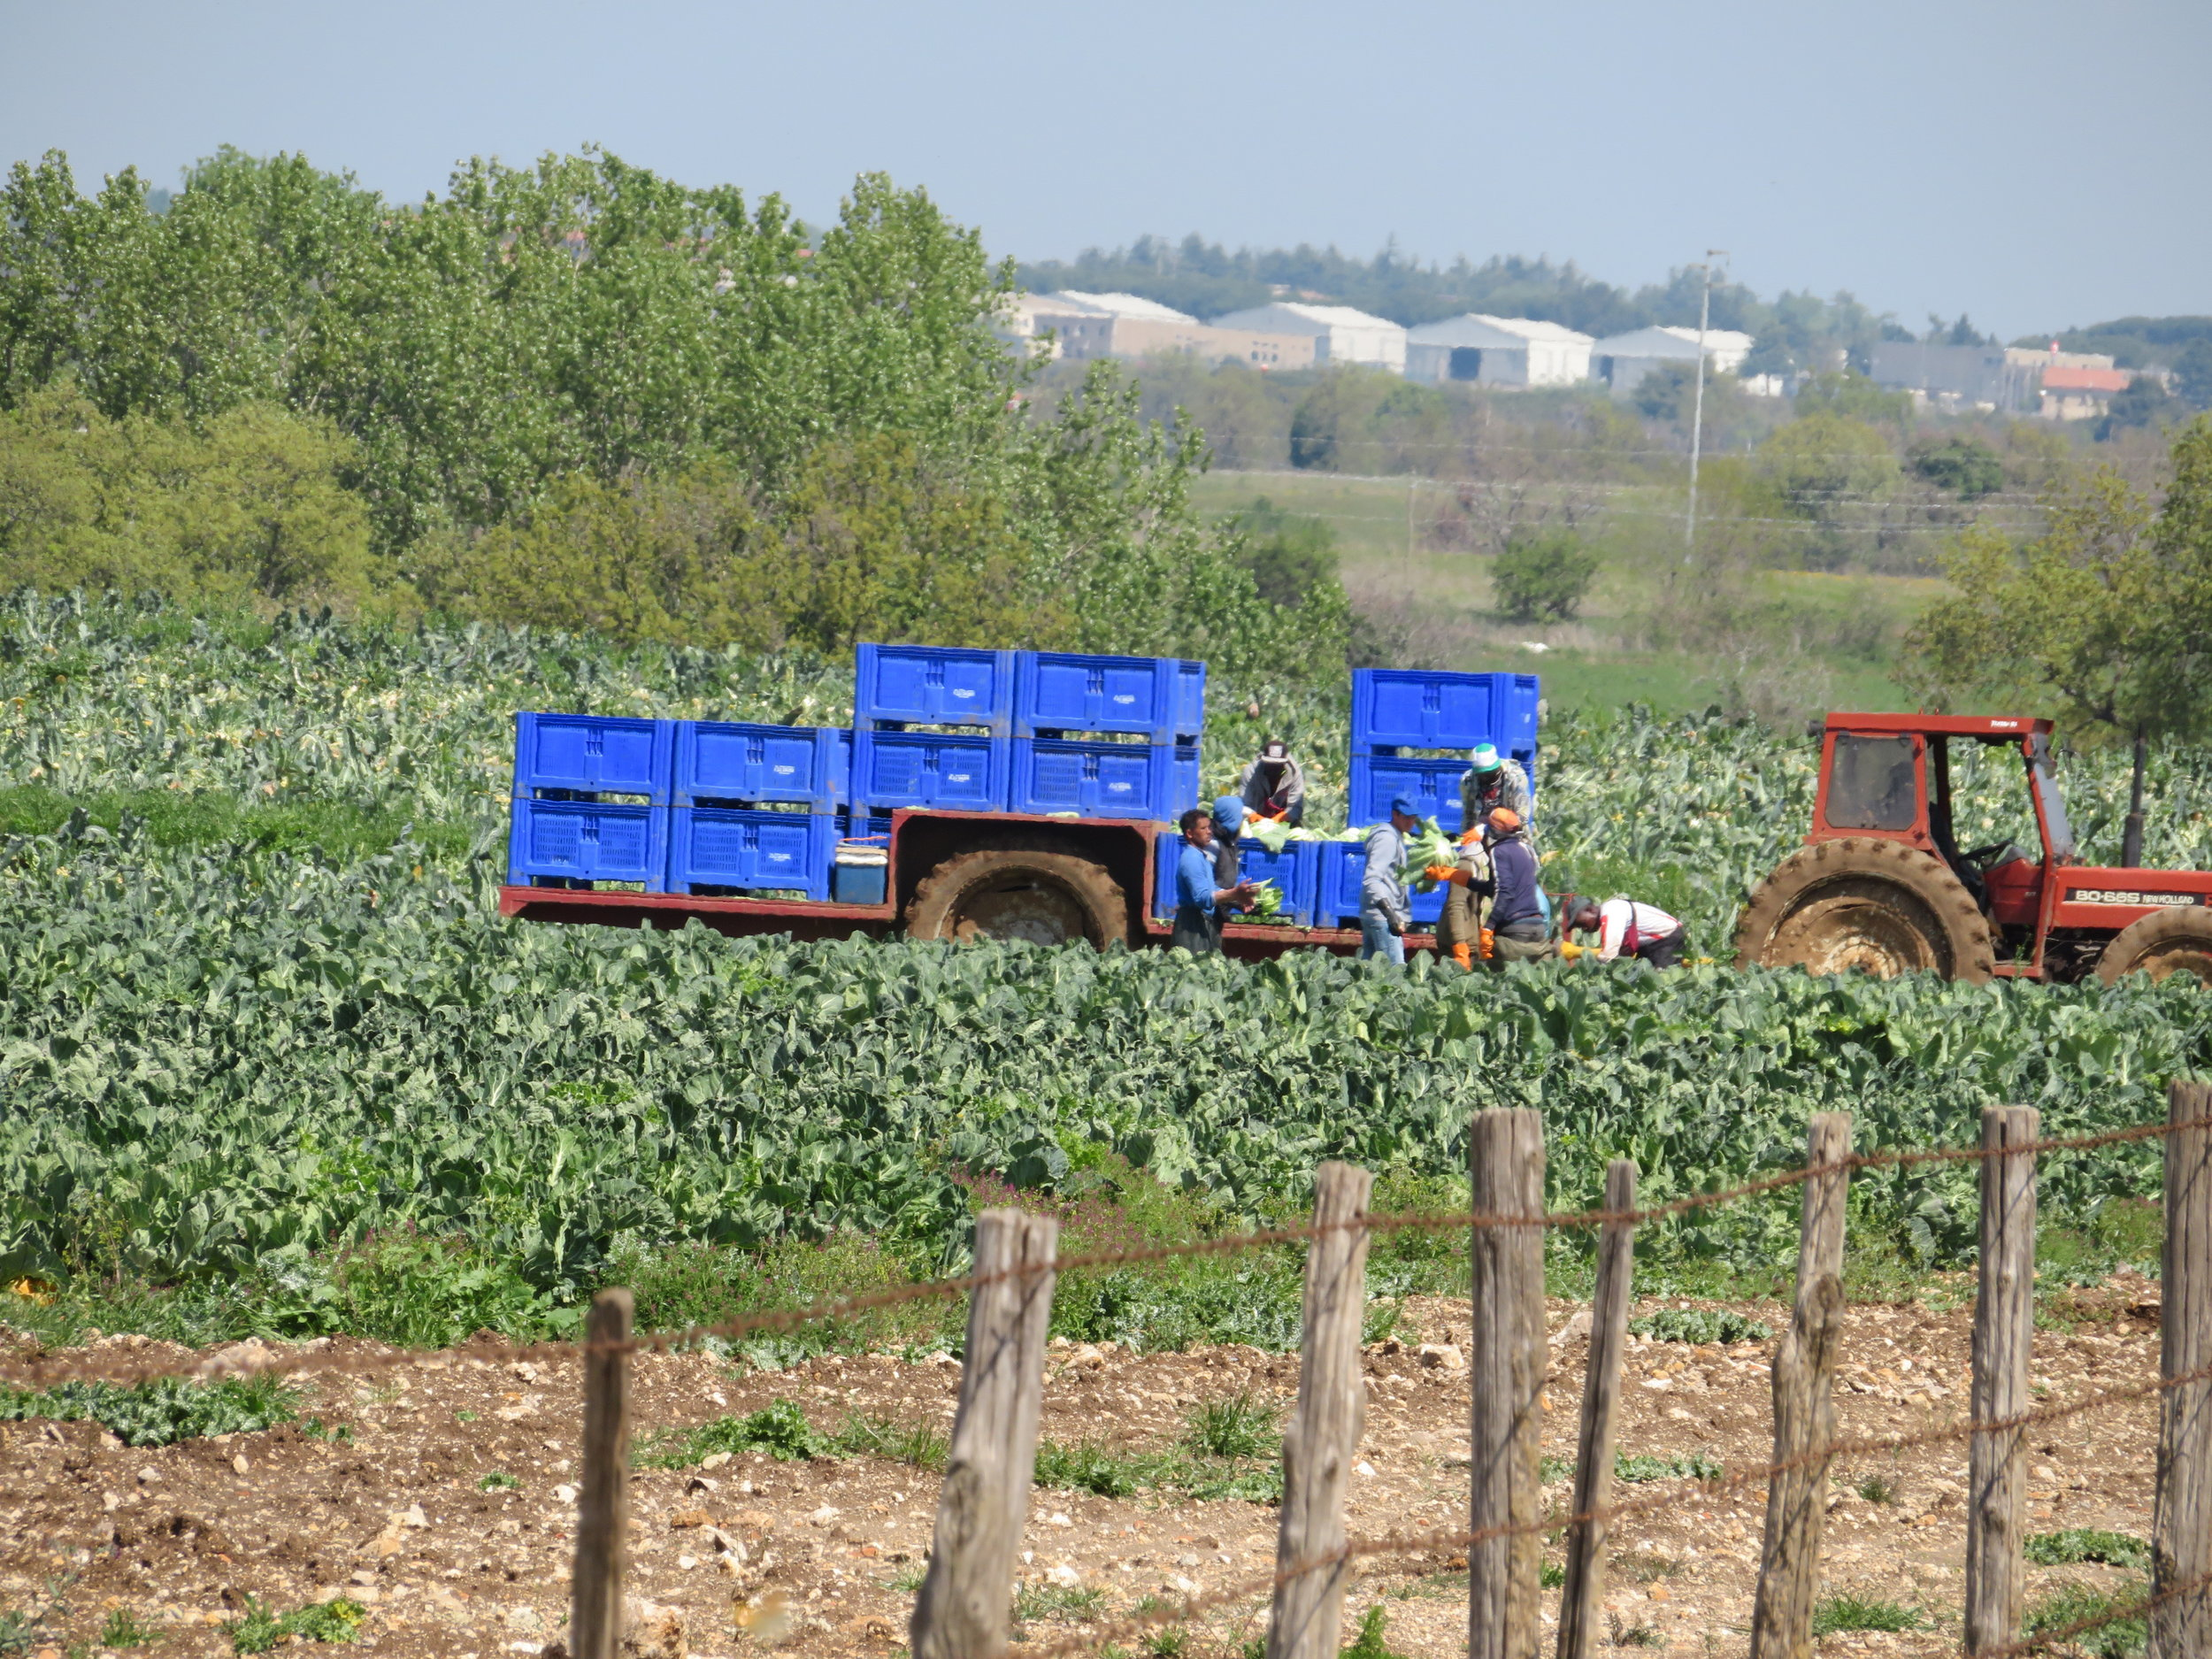 The soil is rich and the growing season is long. Farm workers are already harvesting cabbage here.